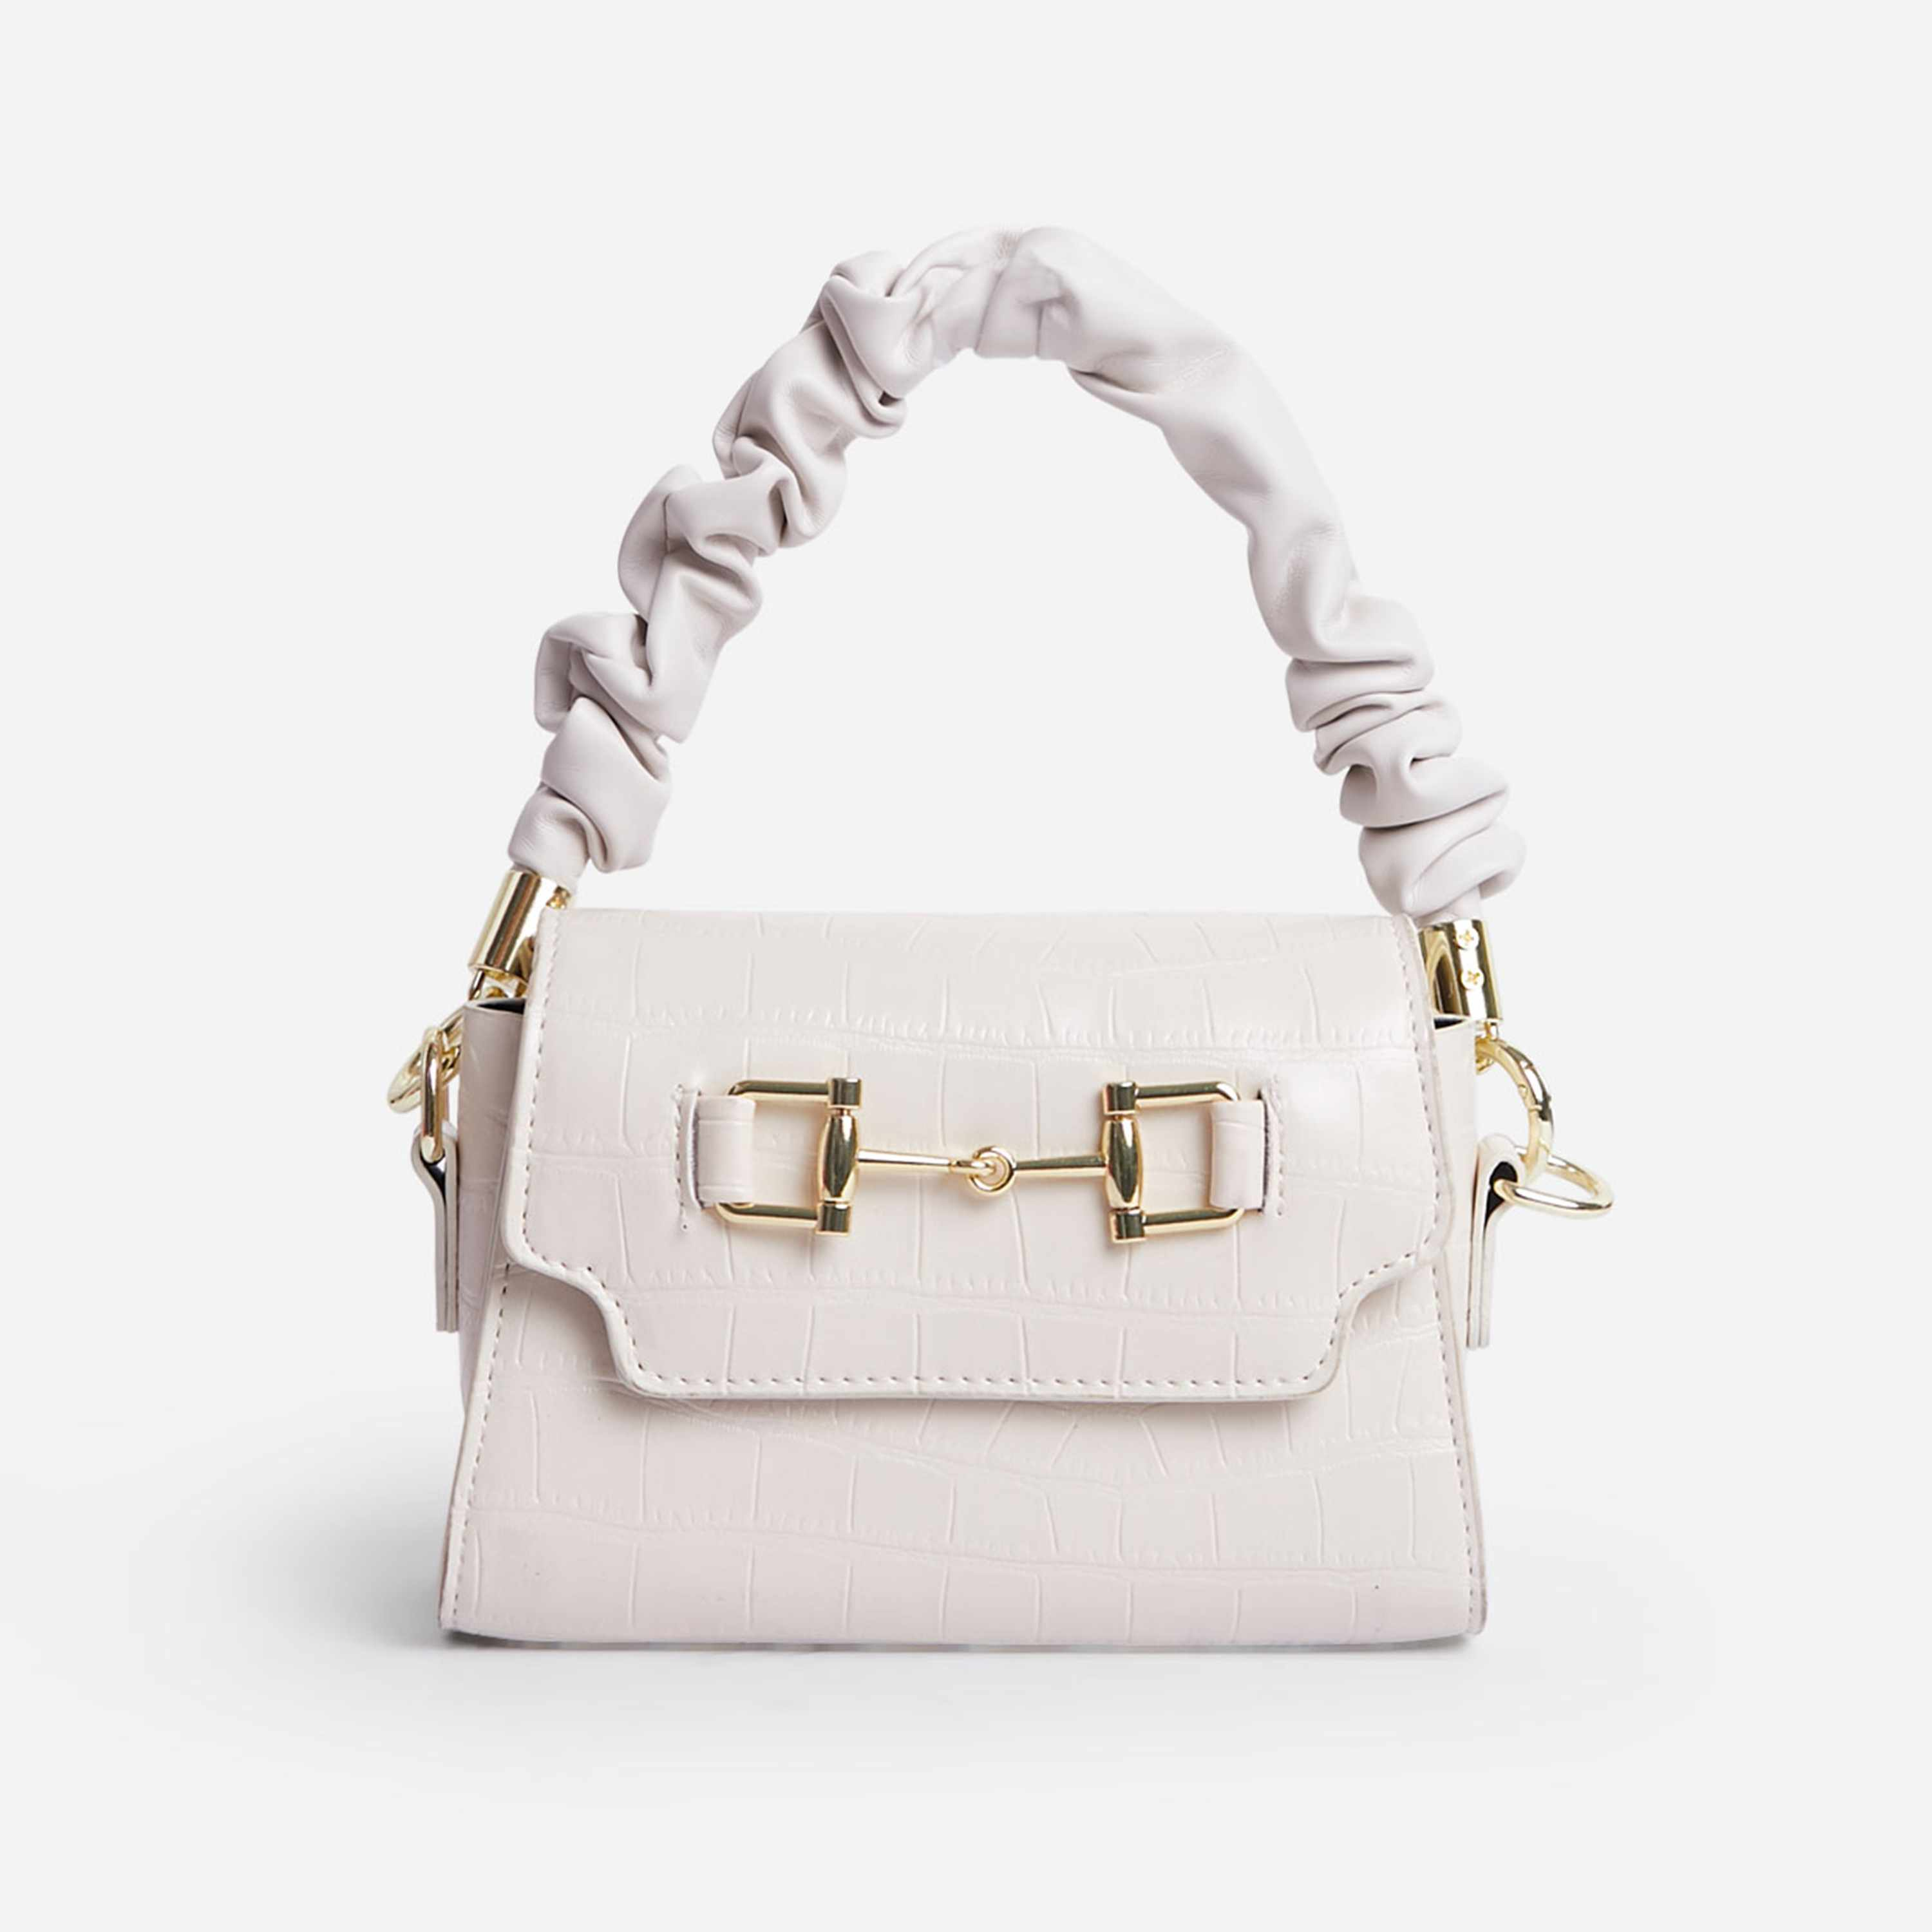 Mackie Ruched Handle Buckle Detail Shoulder Bag In White Croc Print Faux Leather